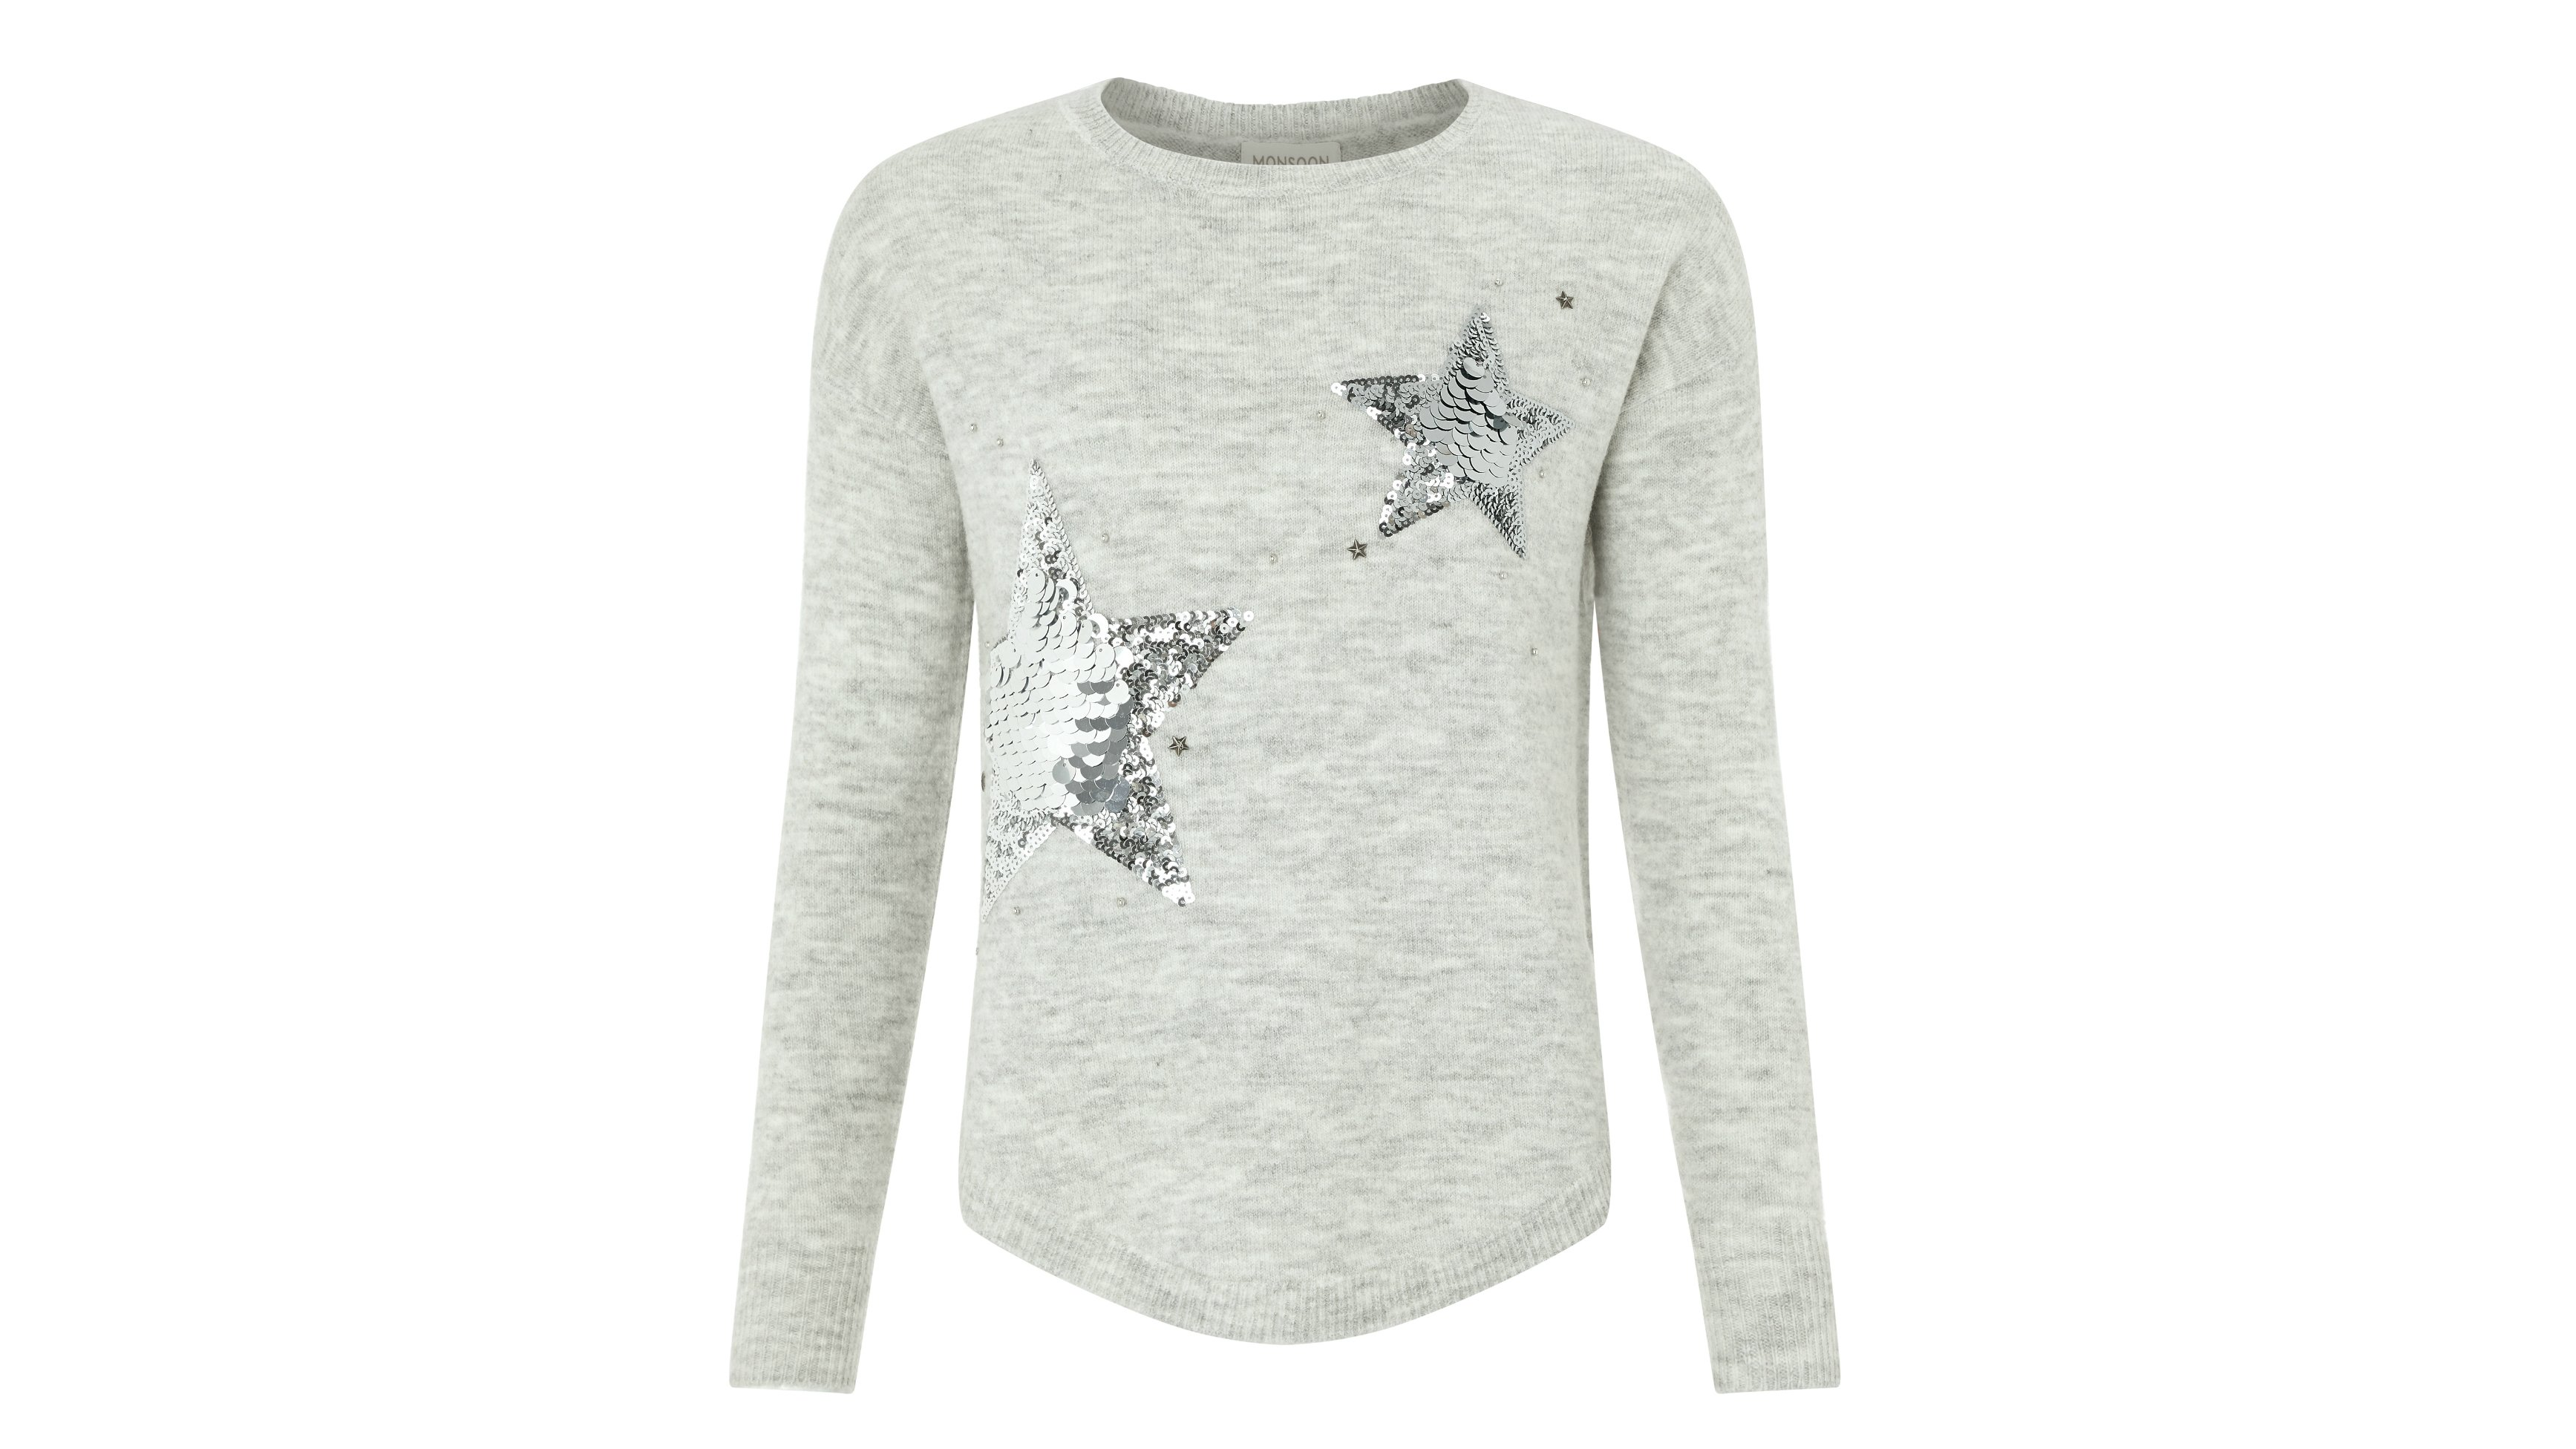 e8d454a7c49 Best Christmas jumpers: Get in the festive spirit with the best and ...